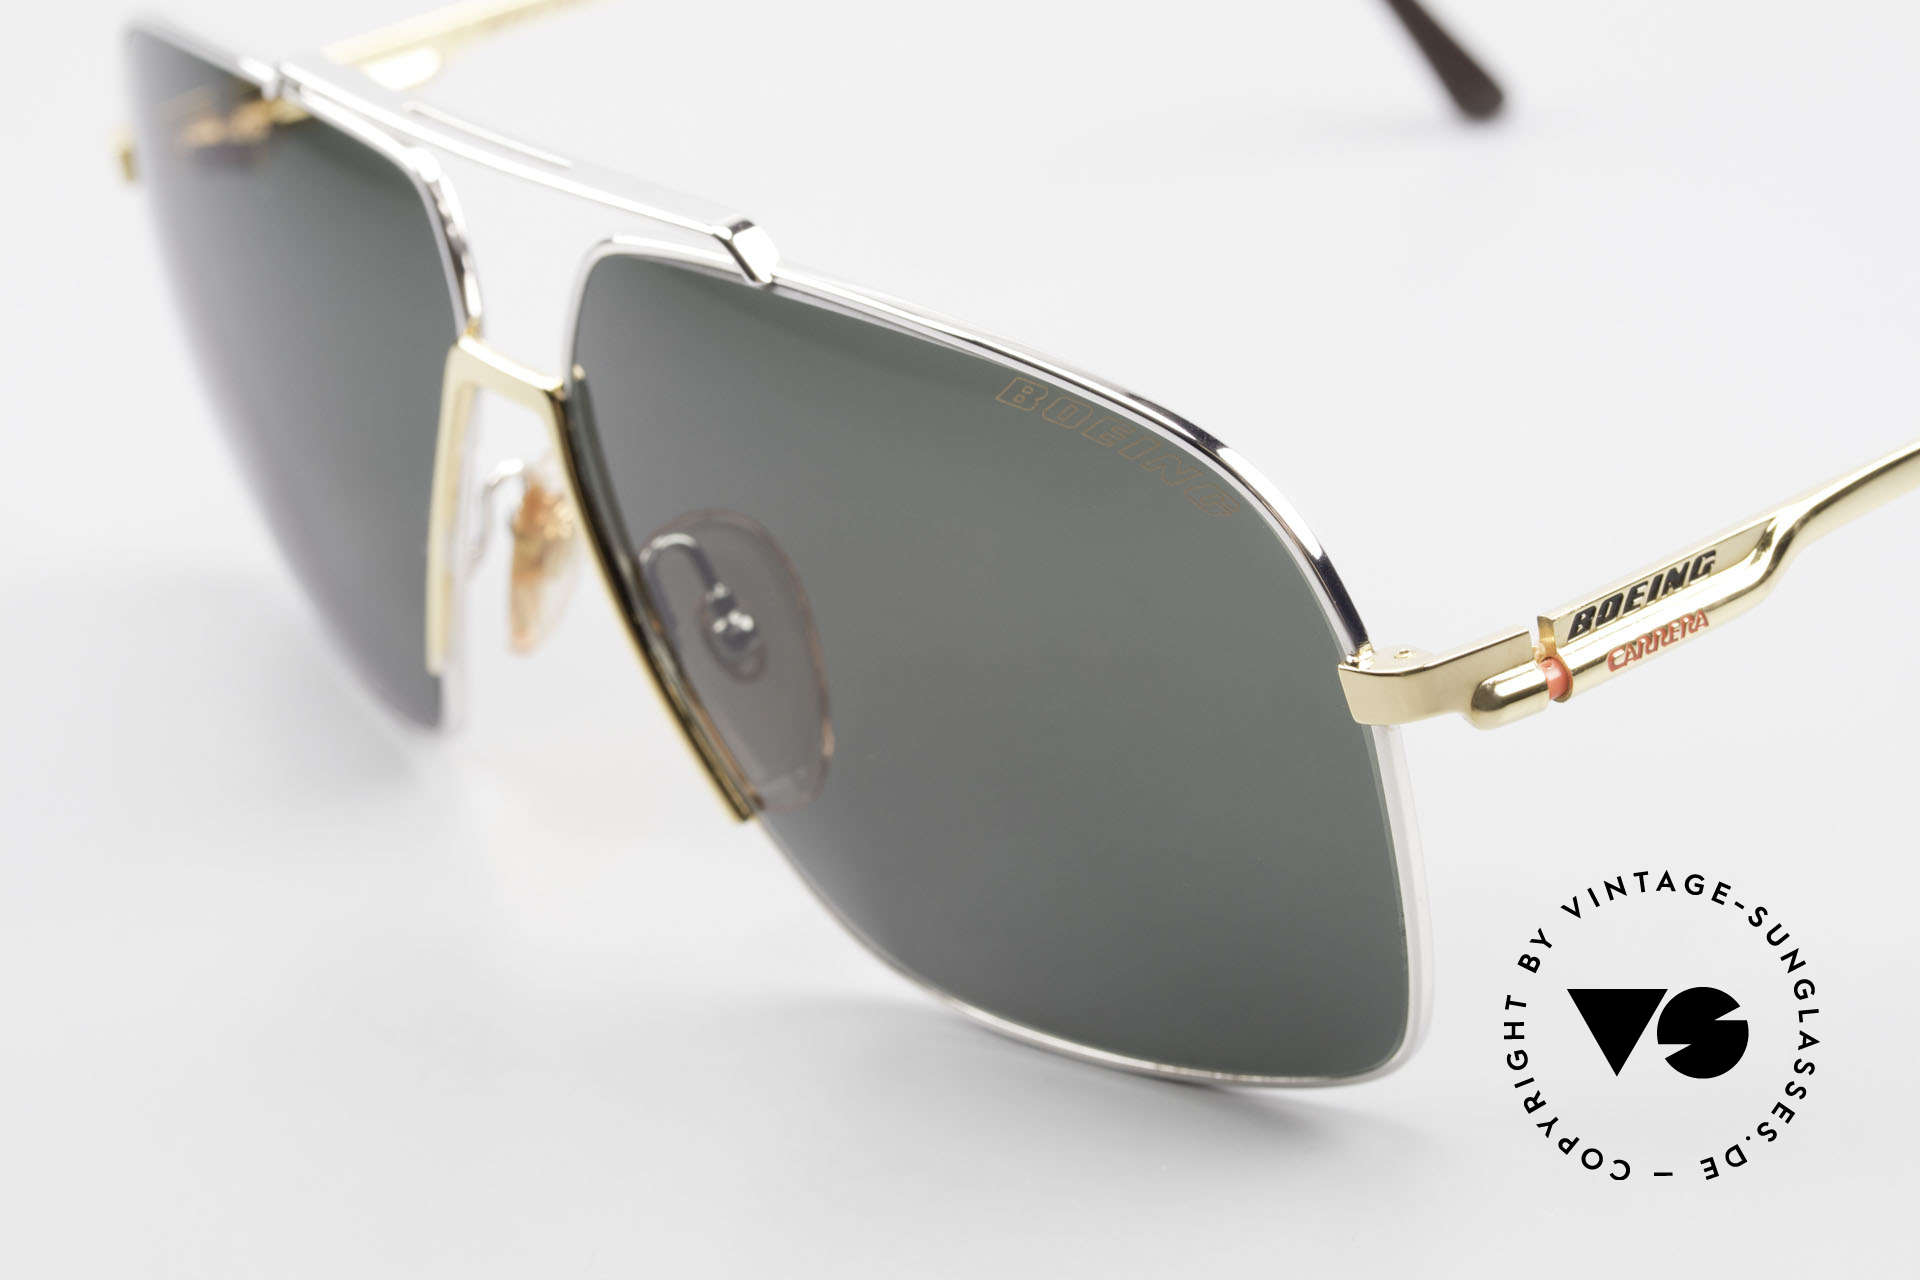 Boeing 5704 Original Old 80's Pilots Shades, new old stock (like all our BOEING aviator shades), Made for Men